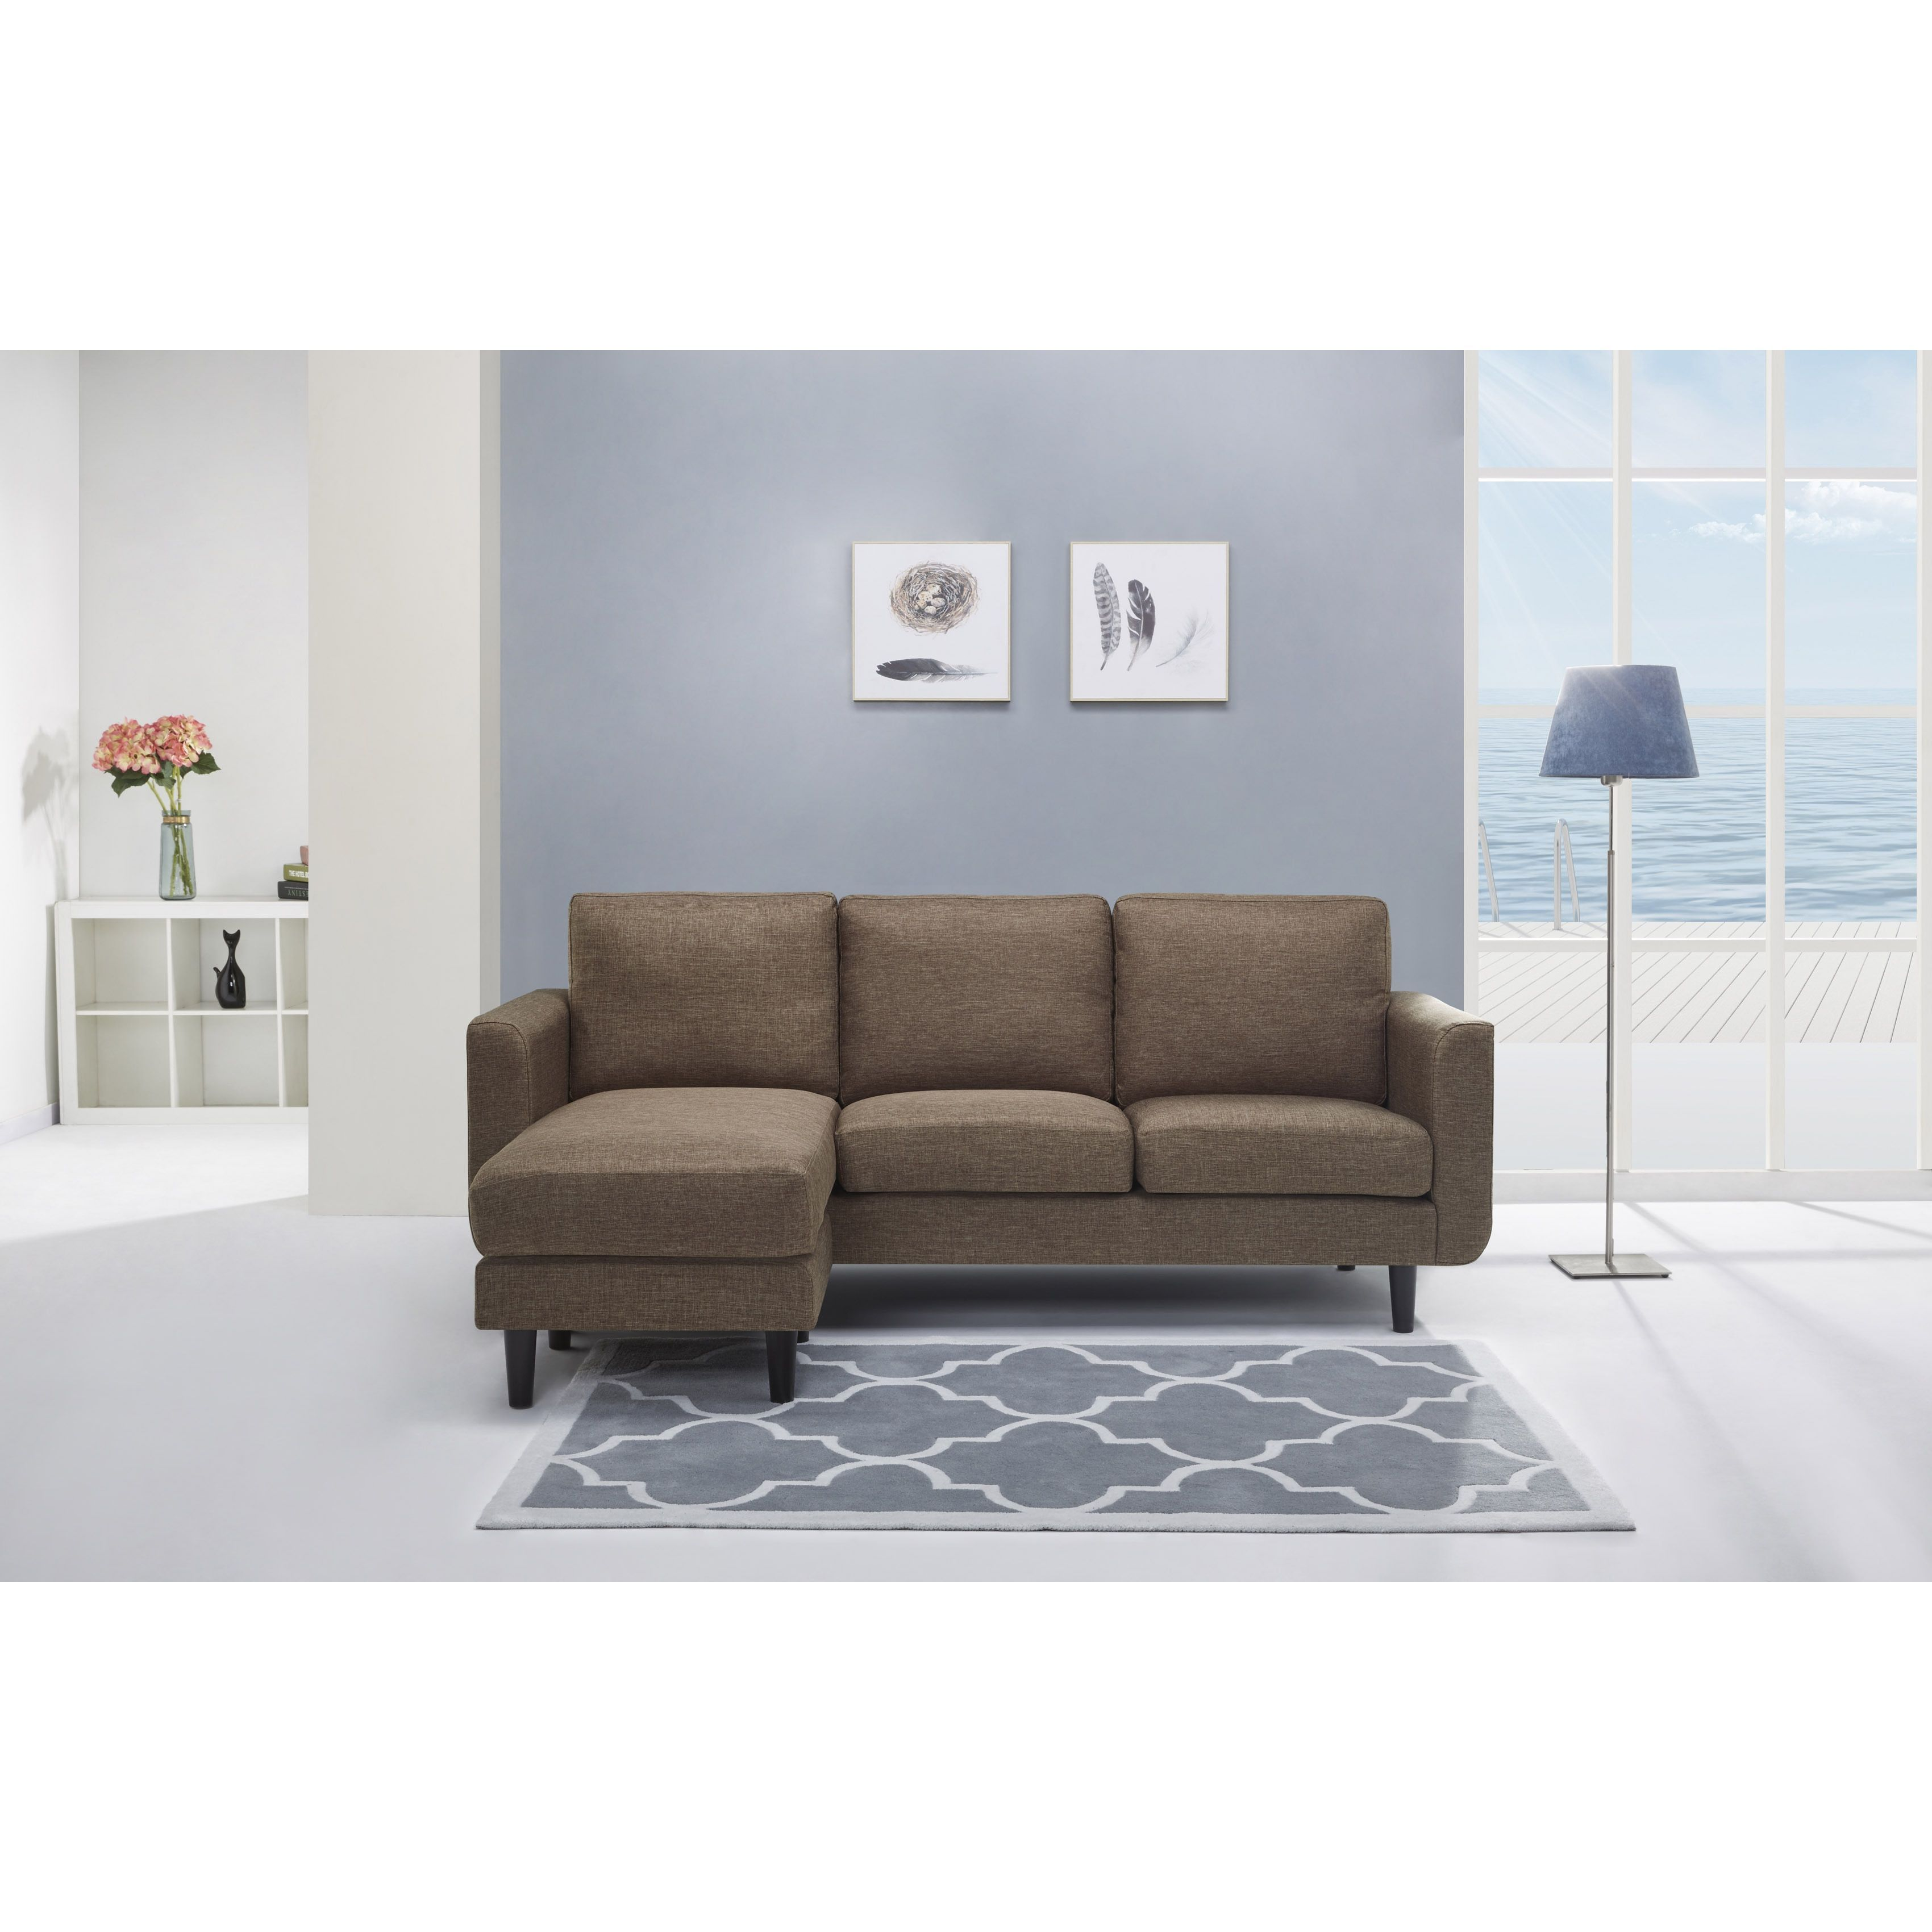 Gold sparrow everett ceramic convertible sectional with reversible